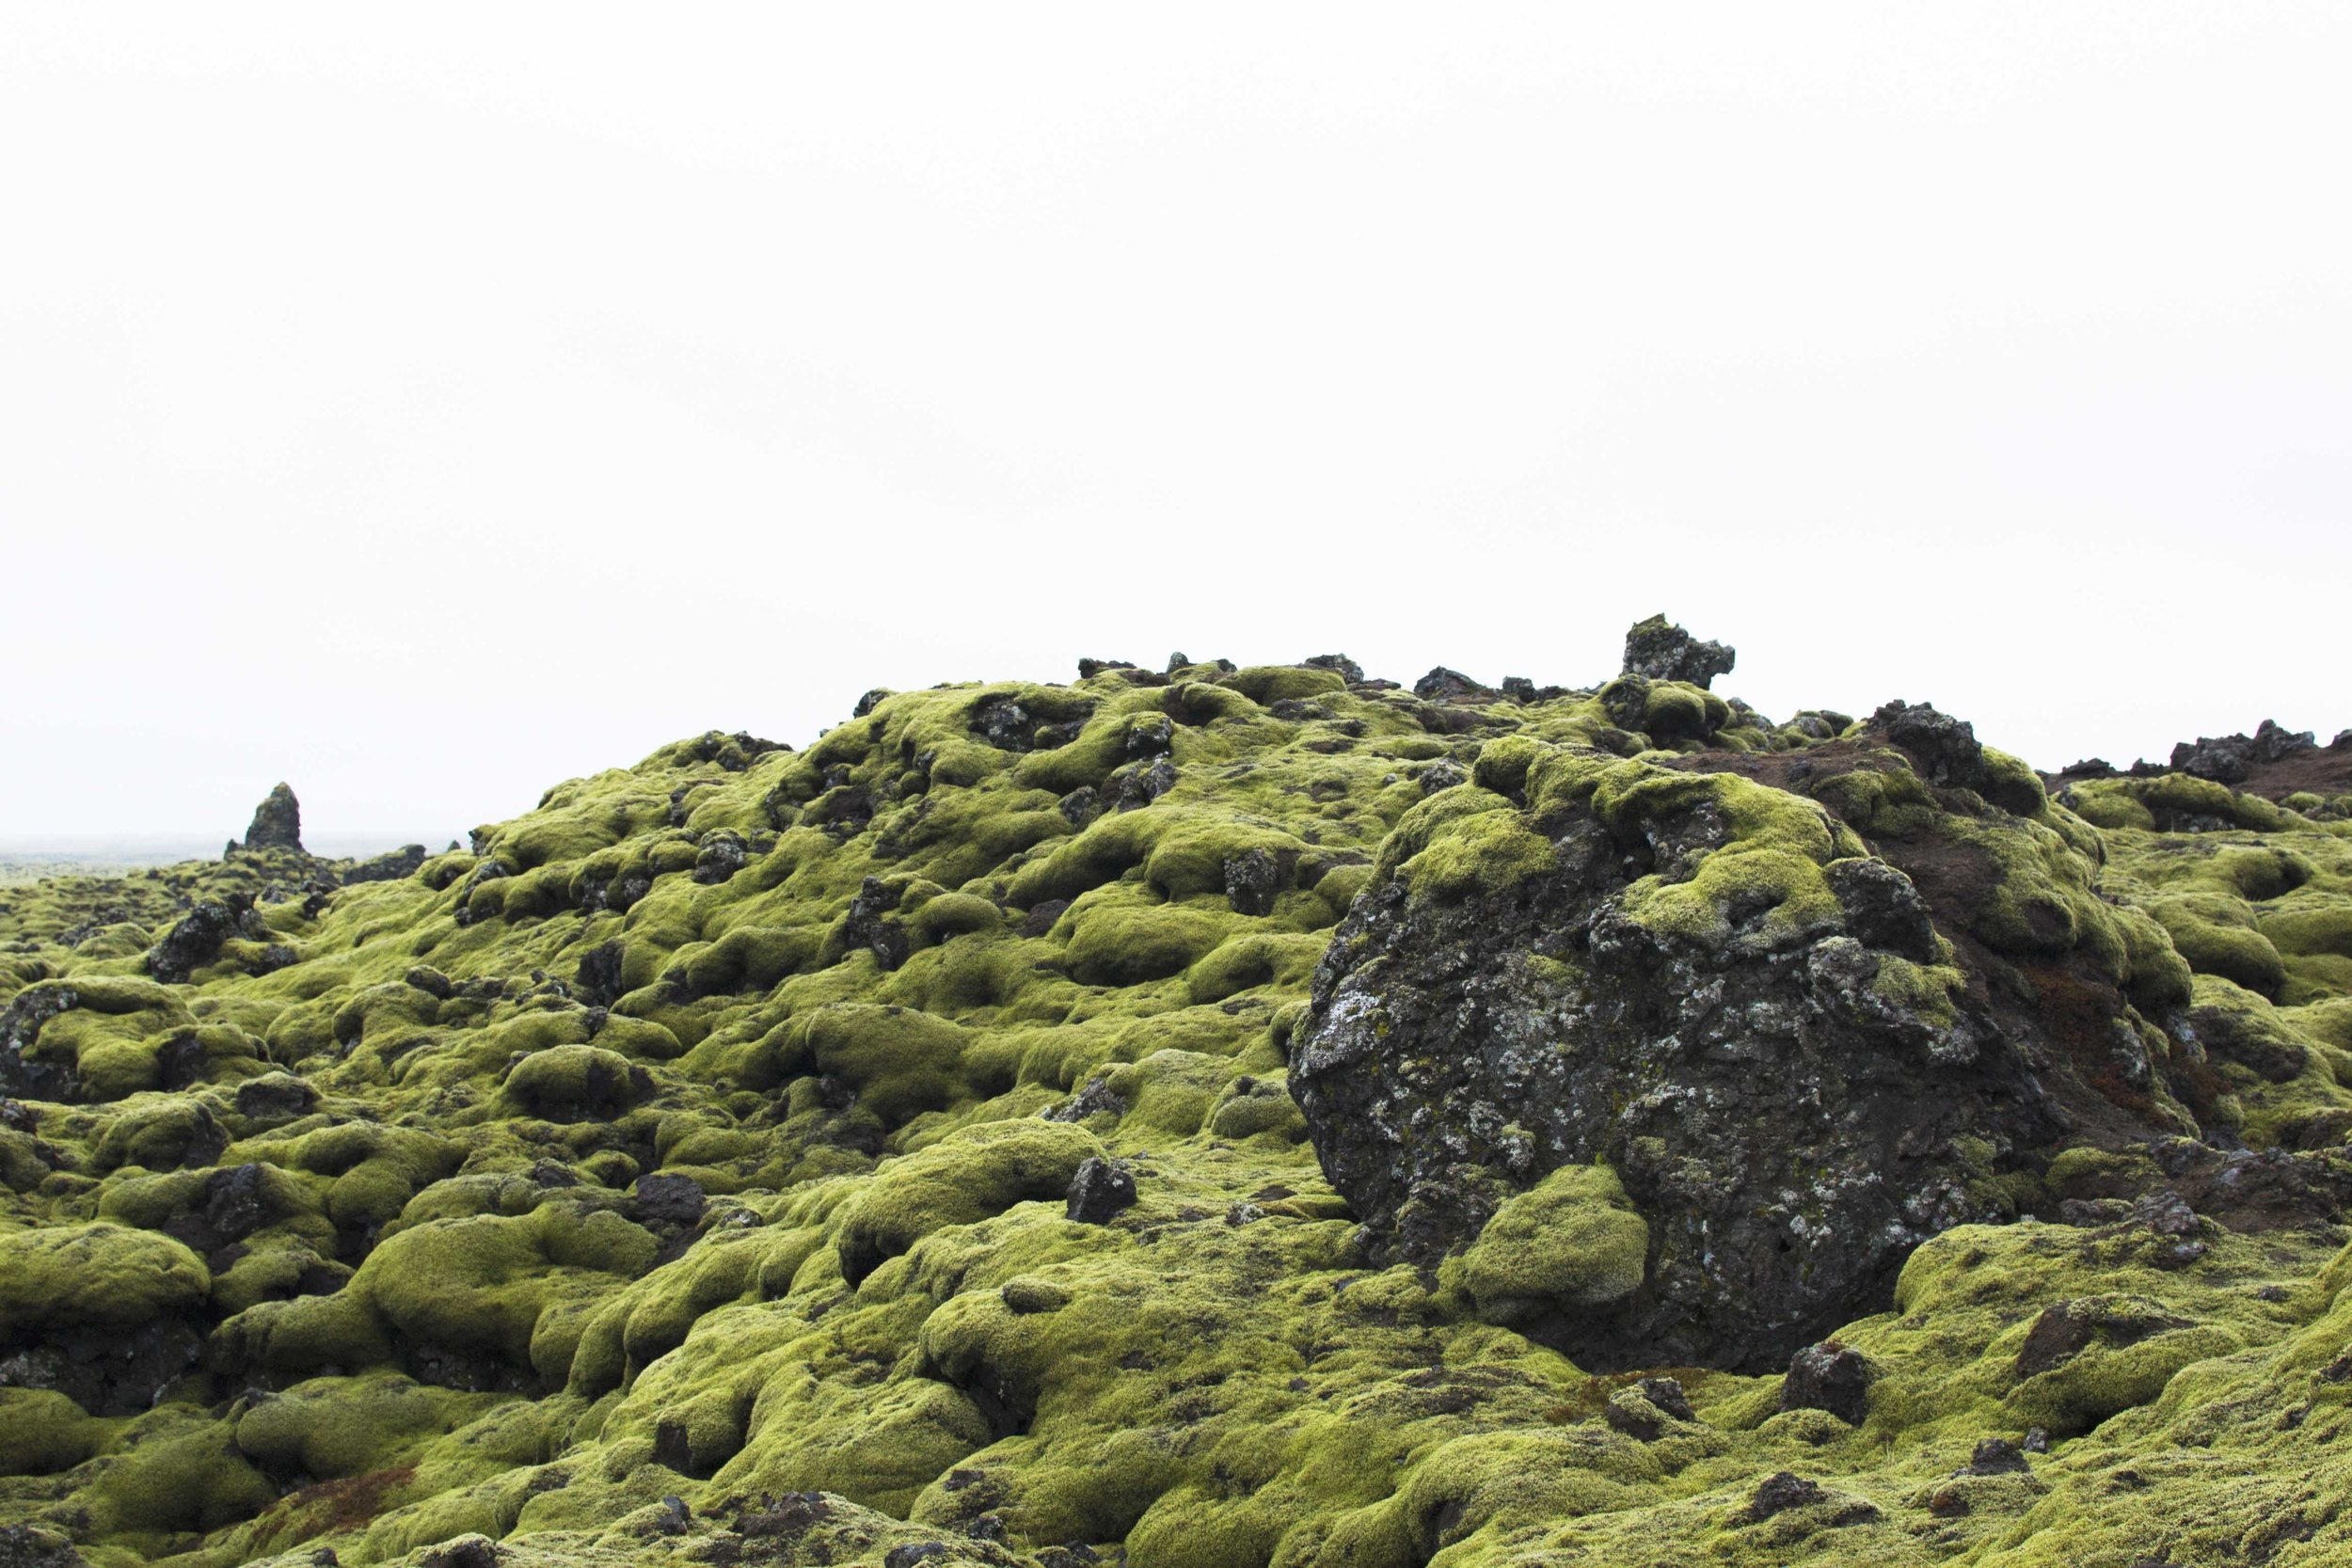 Eldhraun lava field - the third largest lava field on Earth that exists after the Ice Age.